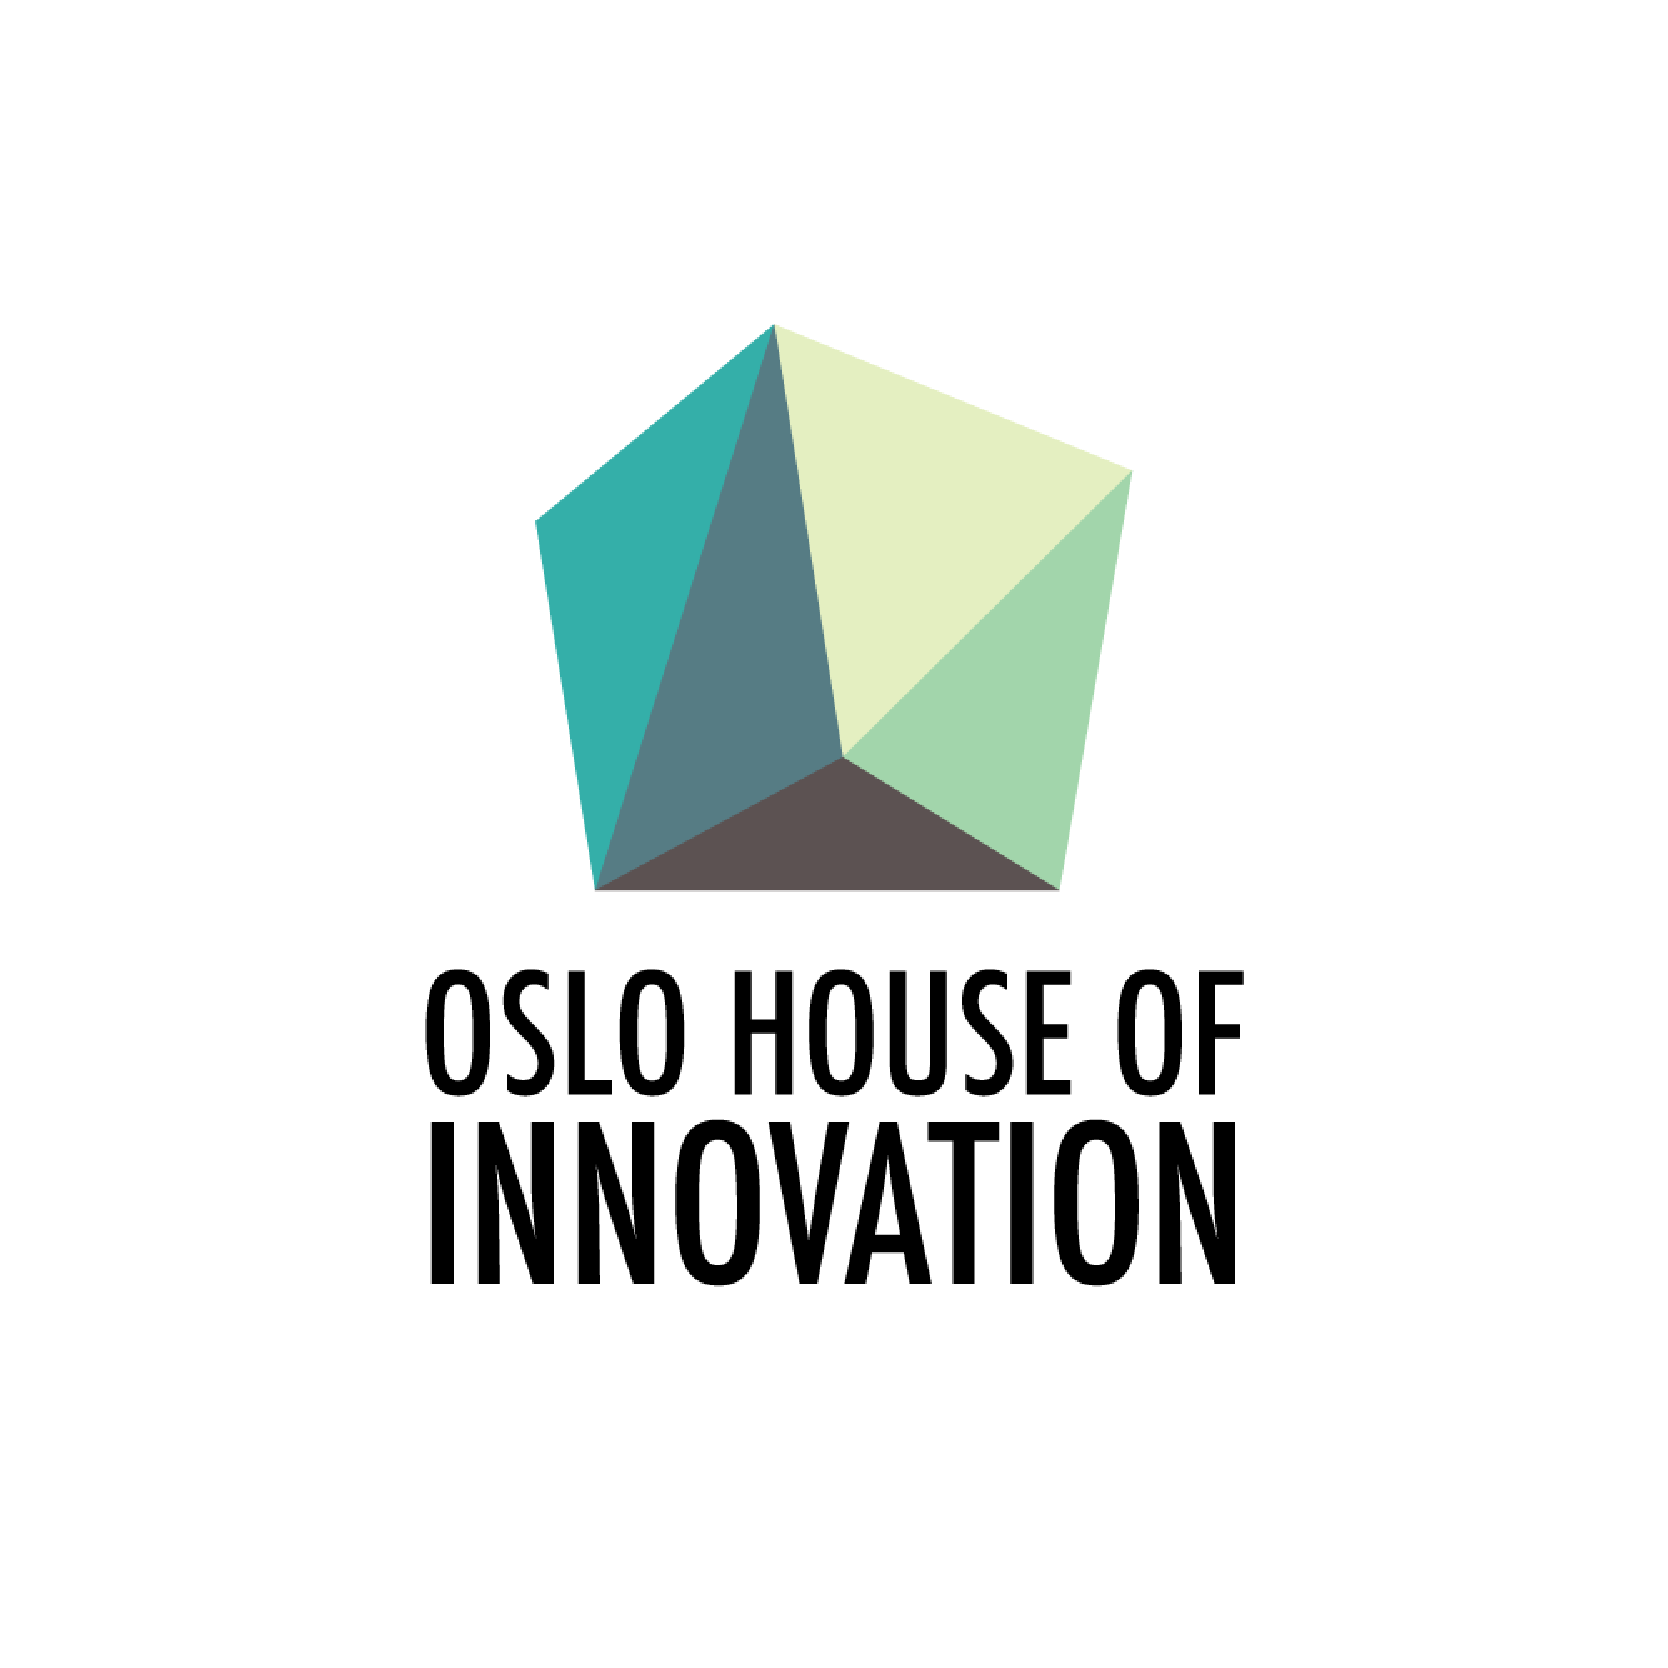 gnd_oslohouse-01.png